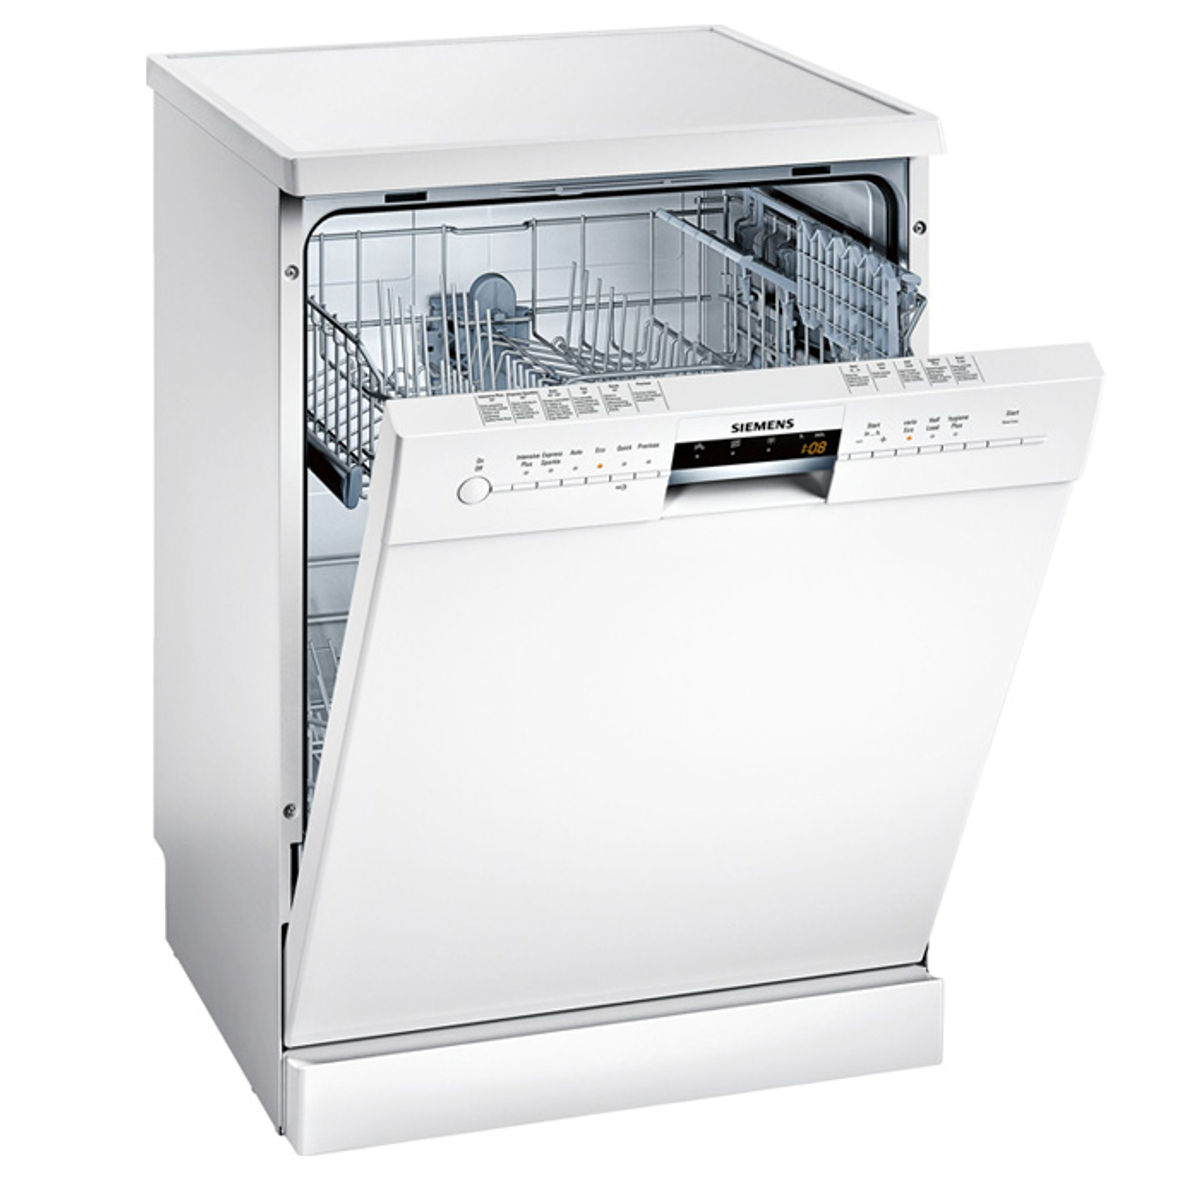 Siemens Sn26l201in Dishwasher Price In India Specification Features 29th March 2021 Digit In